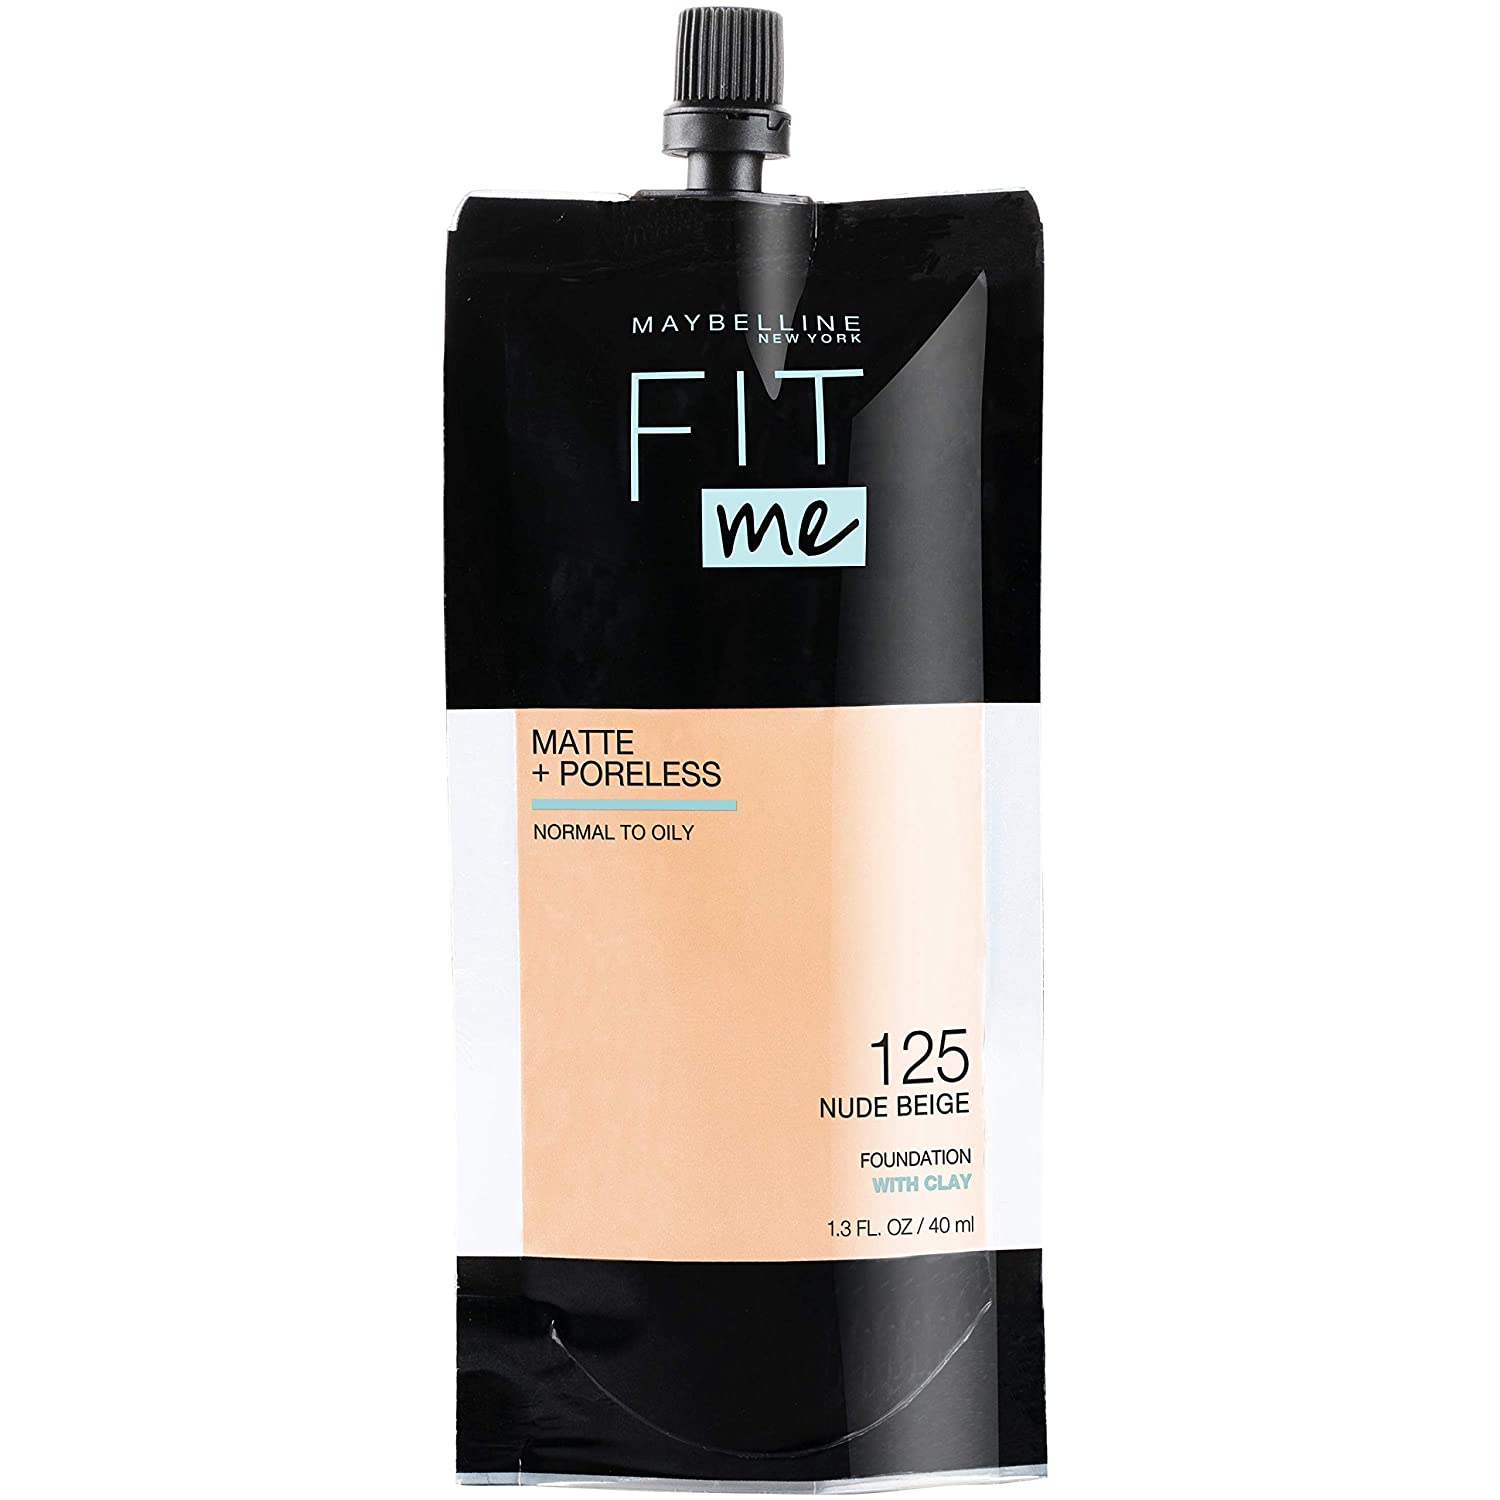 Maybelline Fit Me Matte + Poreless Liquid Foundation, Face Makeup, Mess-Free No Waste Pouch Format, Normal to Oily Skin Types, Nude Beige, 1.3 Fl Oz